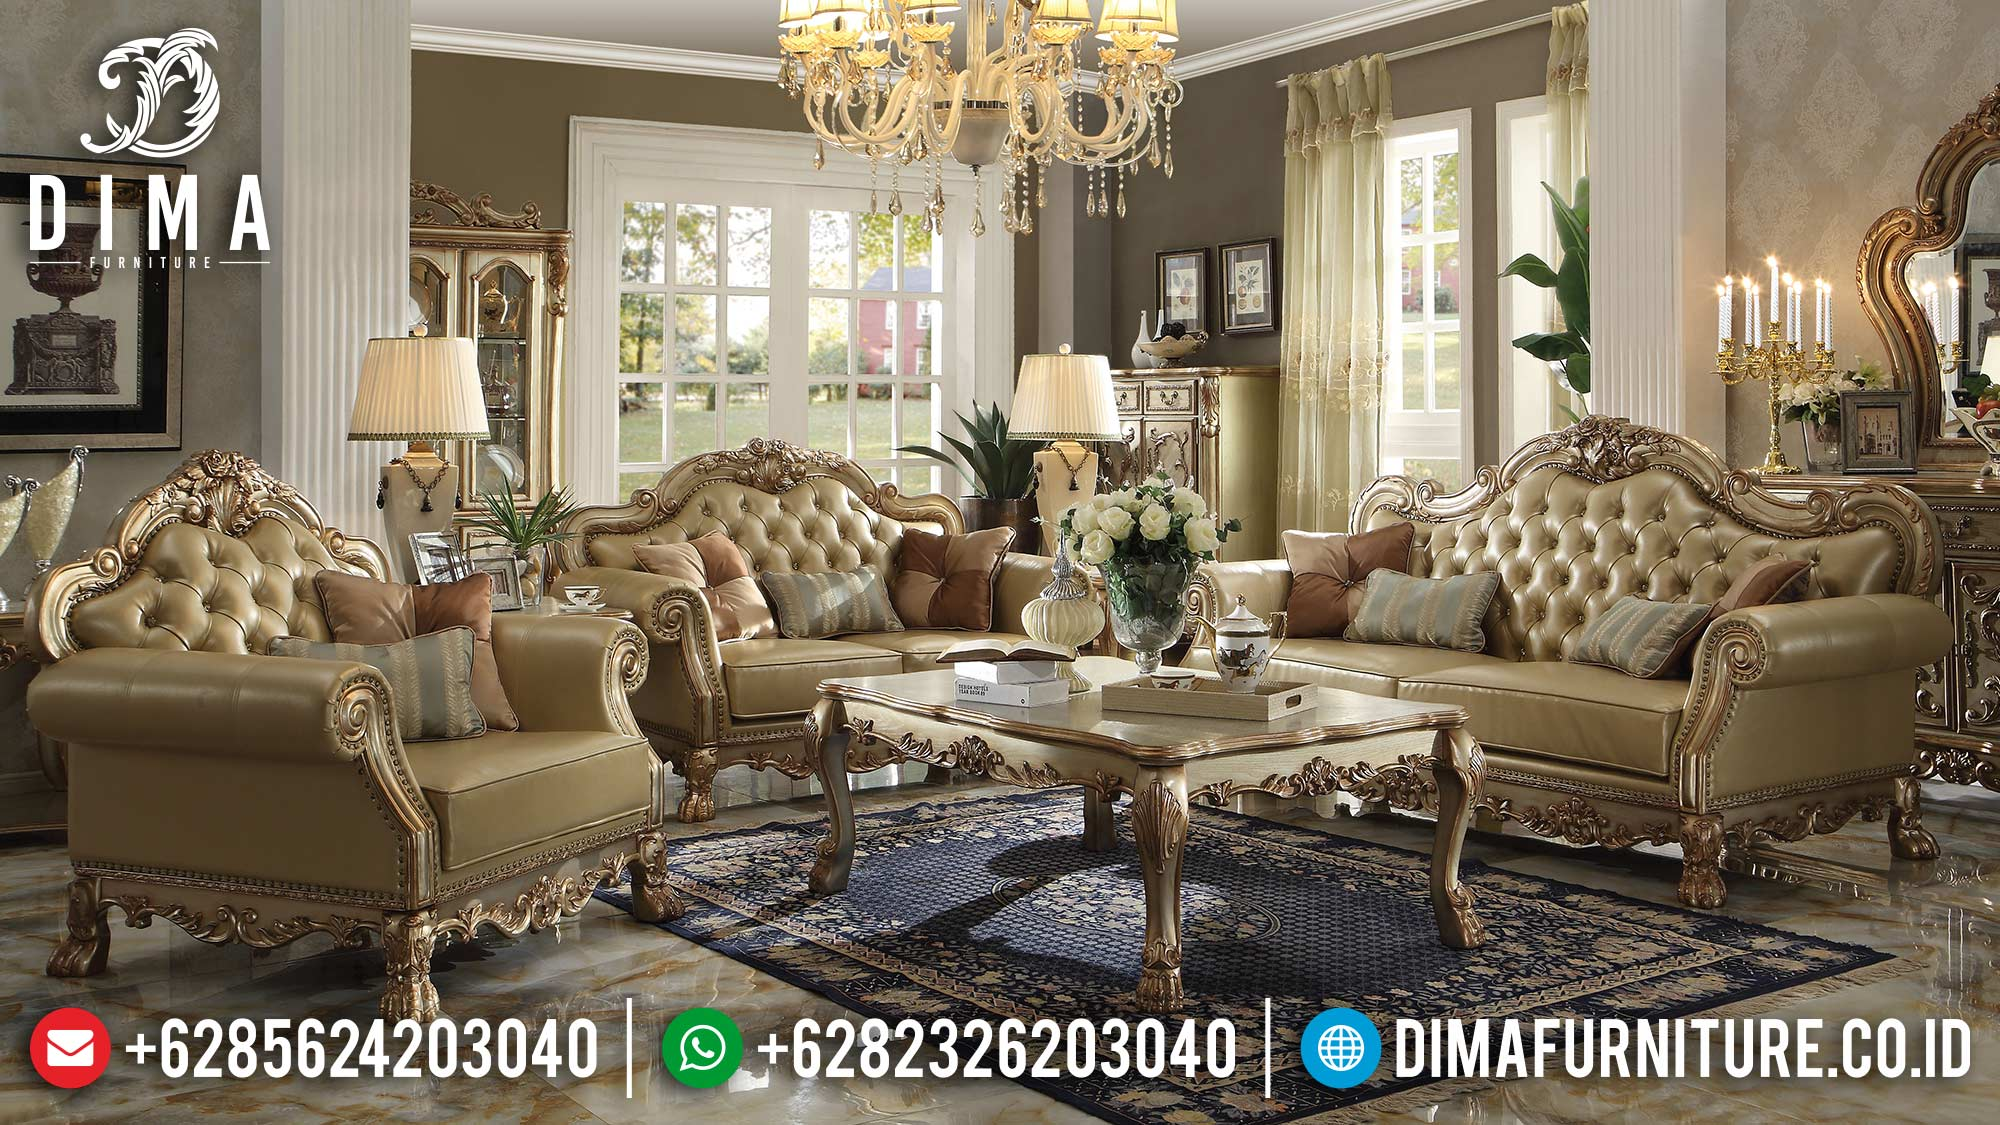 Flash Sale Sofa Tamu Mewah Ukiran Jepara Luxury Carving Classic Furniture Jepara MM-0905